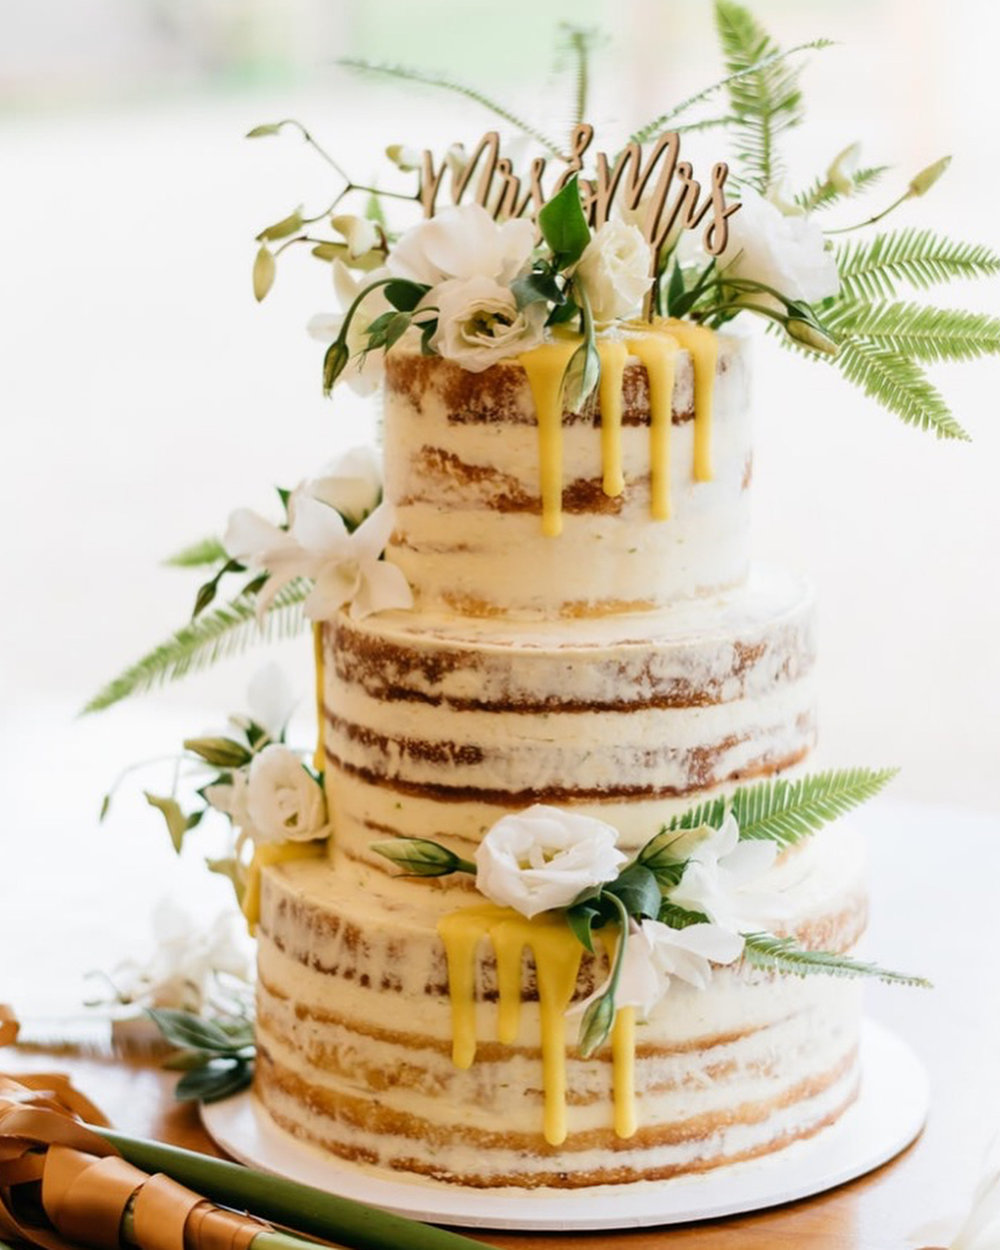 Unique, Colourful Cakes For Every Occasion - Your wedding is far from boring - shouldn't you say the same about your cake? Charlotte Wild of Let Them Eat Cake is Byron Bay's resident cake genius. Her designs are feminine, colourful, and take advantage of local blooms, berries, and sweet treats as unconventional but delicious toppers. Each cake is a work of art and cutting into them is a truly unforgettable experience. Gluten free and vegan options are also available, and Charlotte's team is willing to hand-deliver your confection to your Byron Bay venue, no matter the location!Visit WebsiteByron Bay, AustraliaPhone: +61 4 0367 7684Email: info@eatcake.net.au